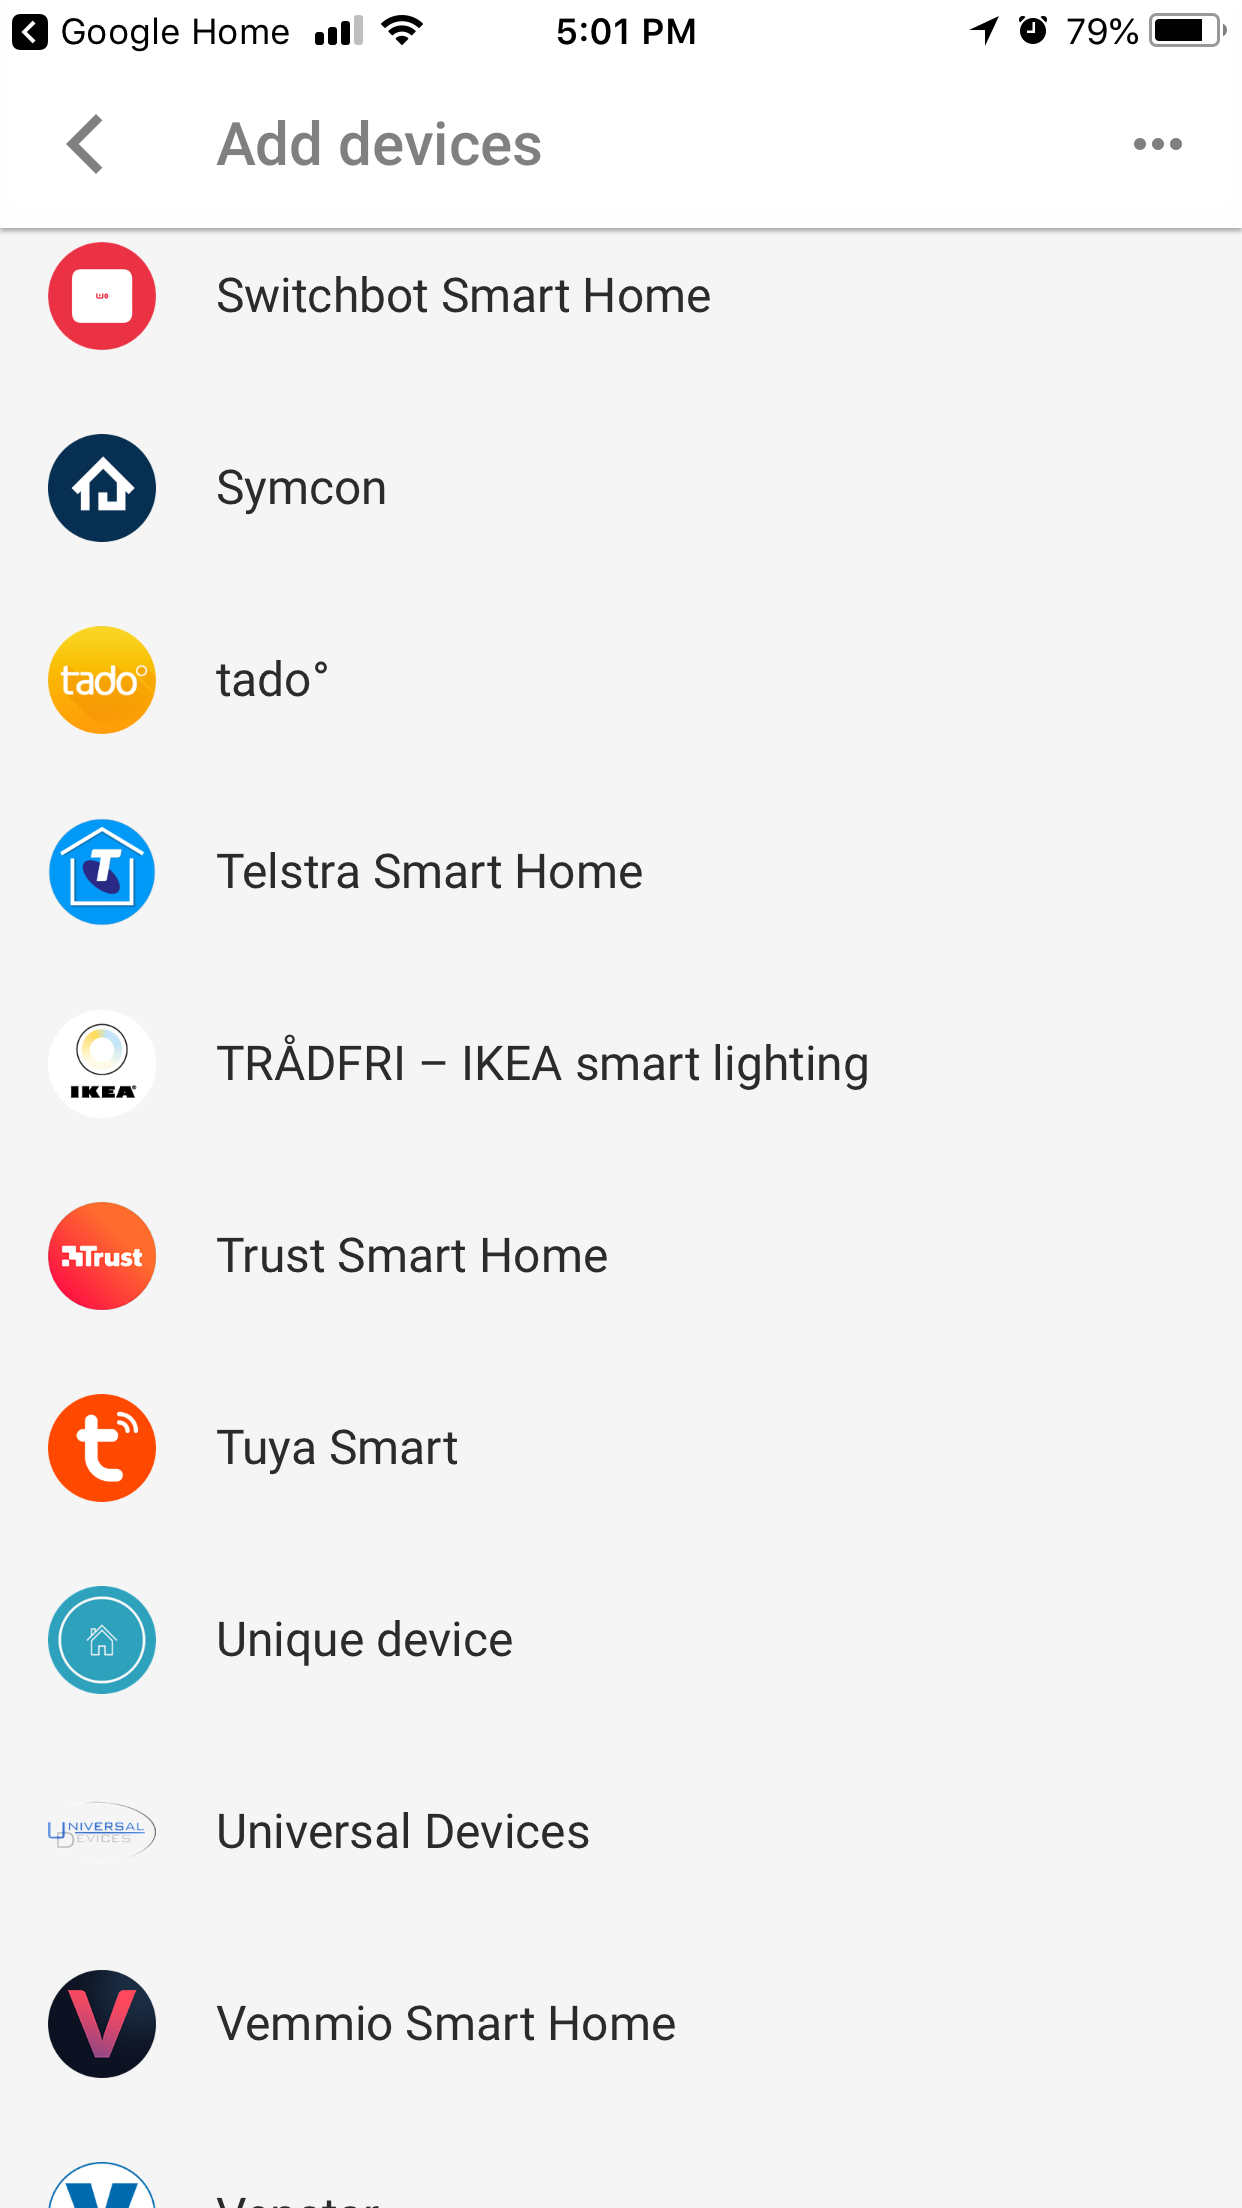 TP-Link Kasa is no longer listed in the Add Device list